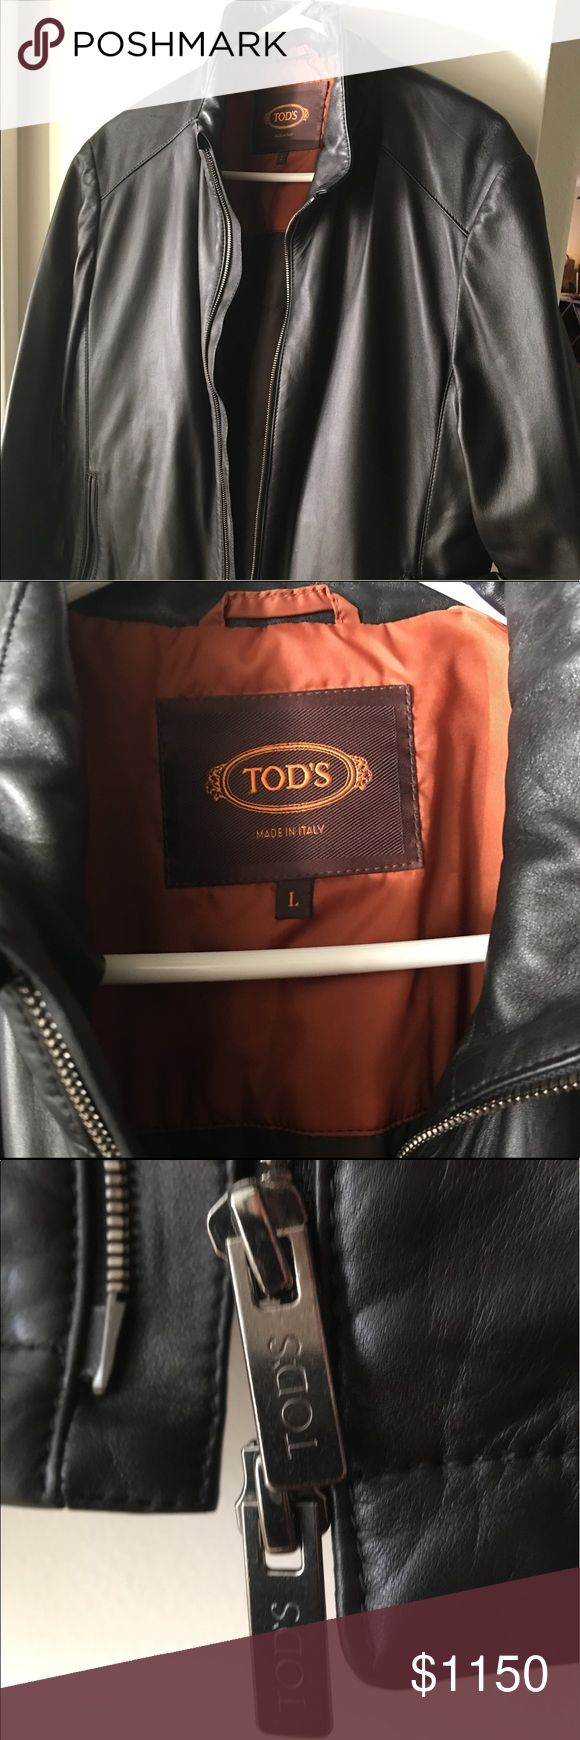 Tod's lambskin leather jacket, men's large Tod's black leather jacket. Lambskin. Zip pockets. New without tags, never worn.  Quilted lining. Made in Italy. Tod's Jackets & Coats